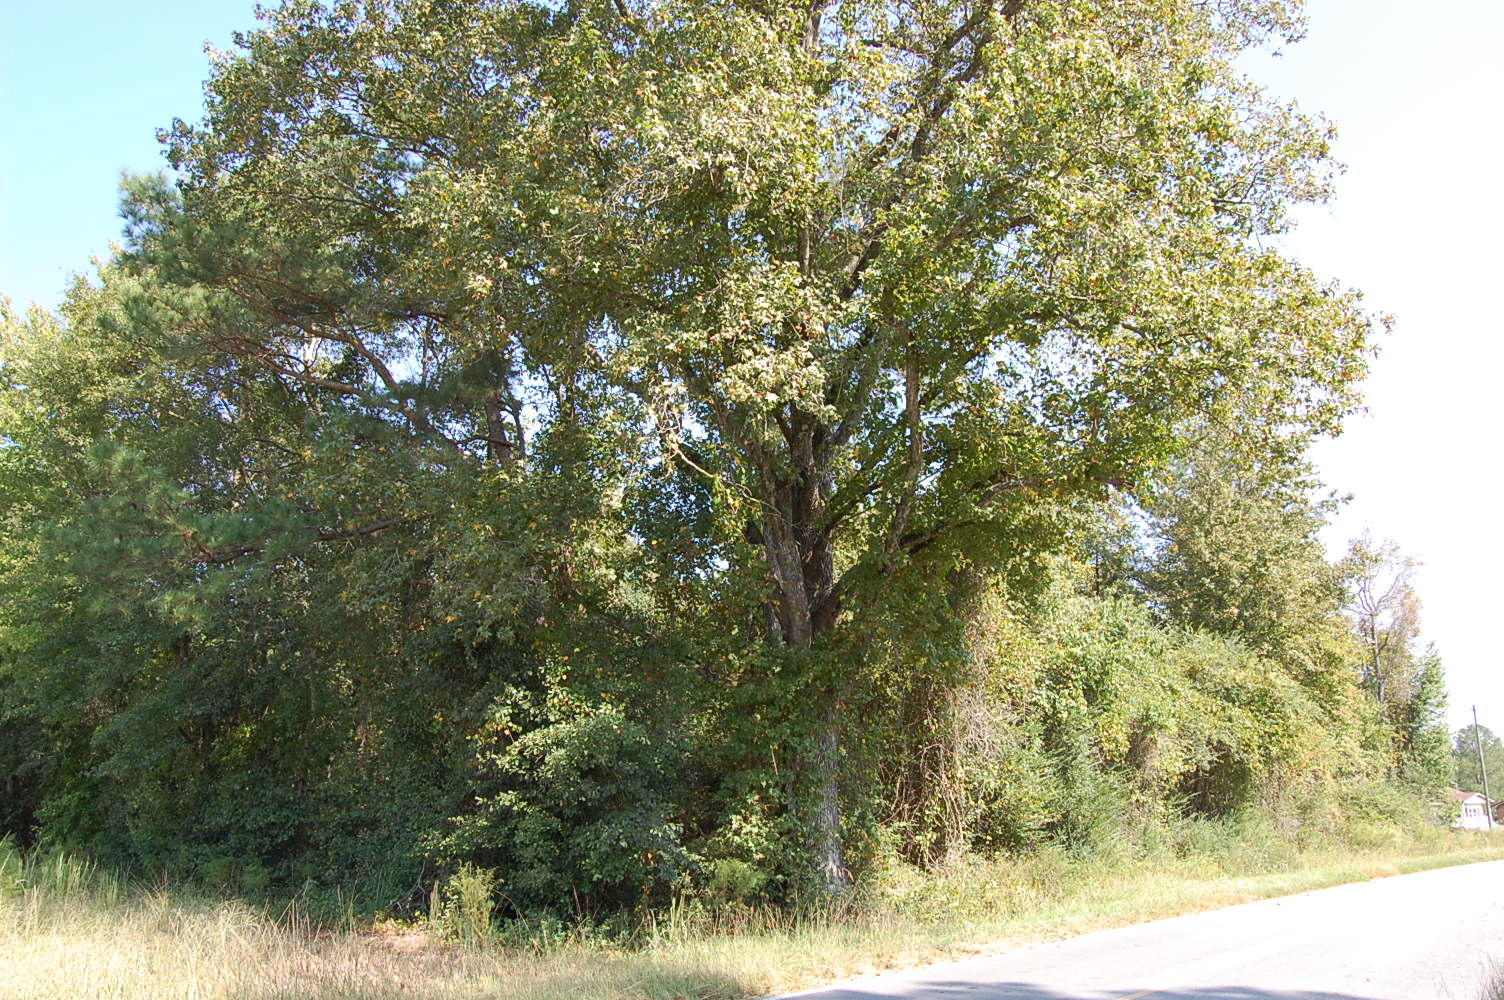 Nearly 1 Acre in Quaint Southern Community - Image 2